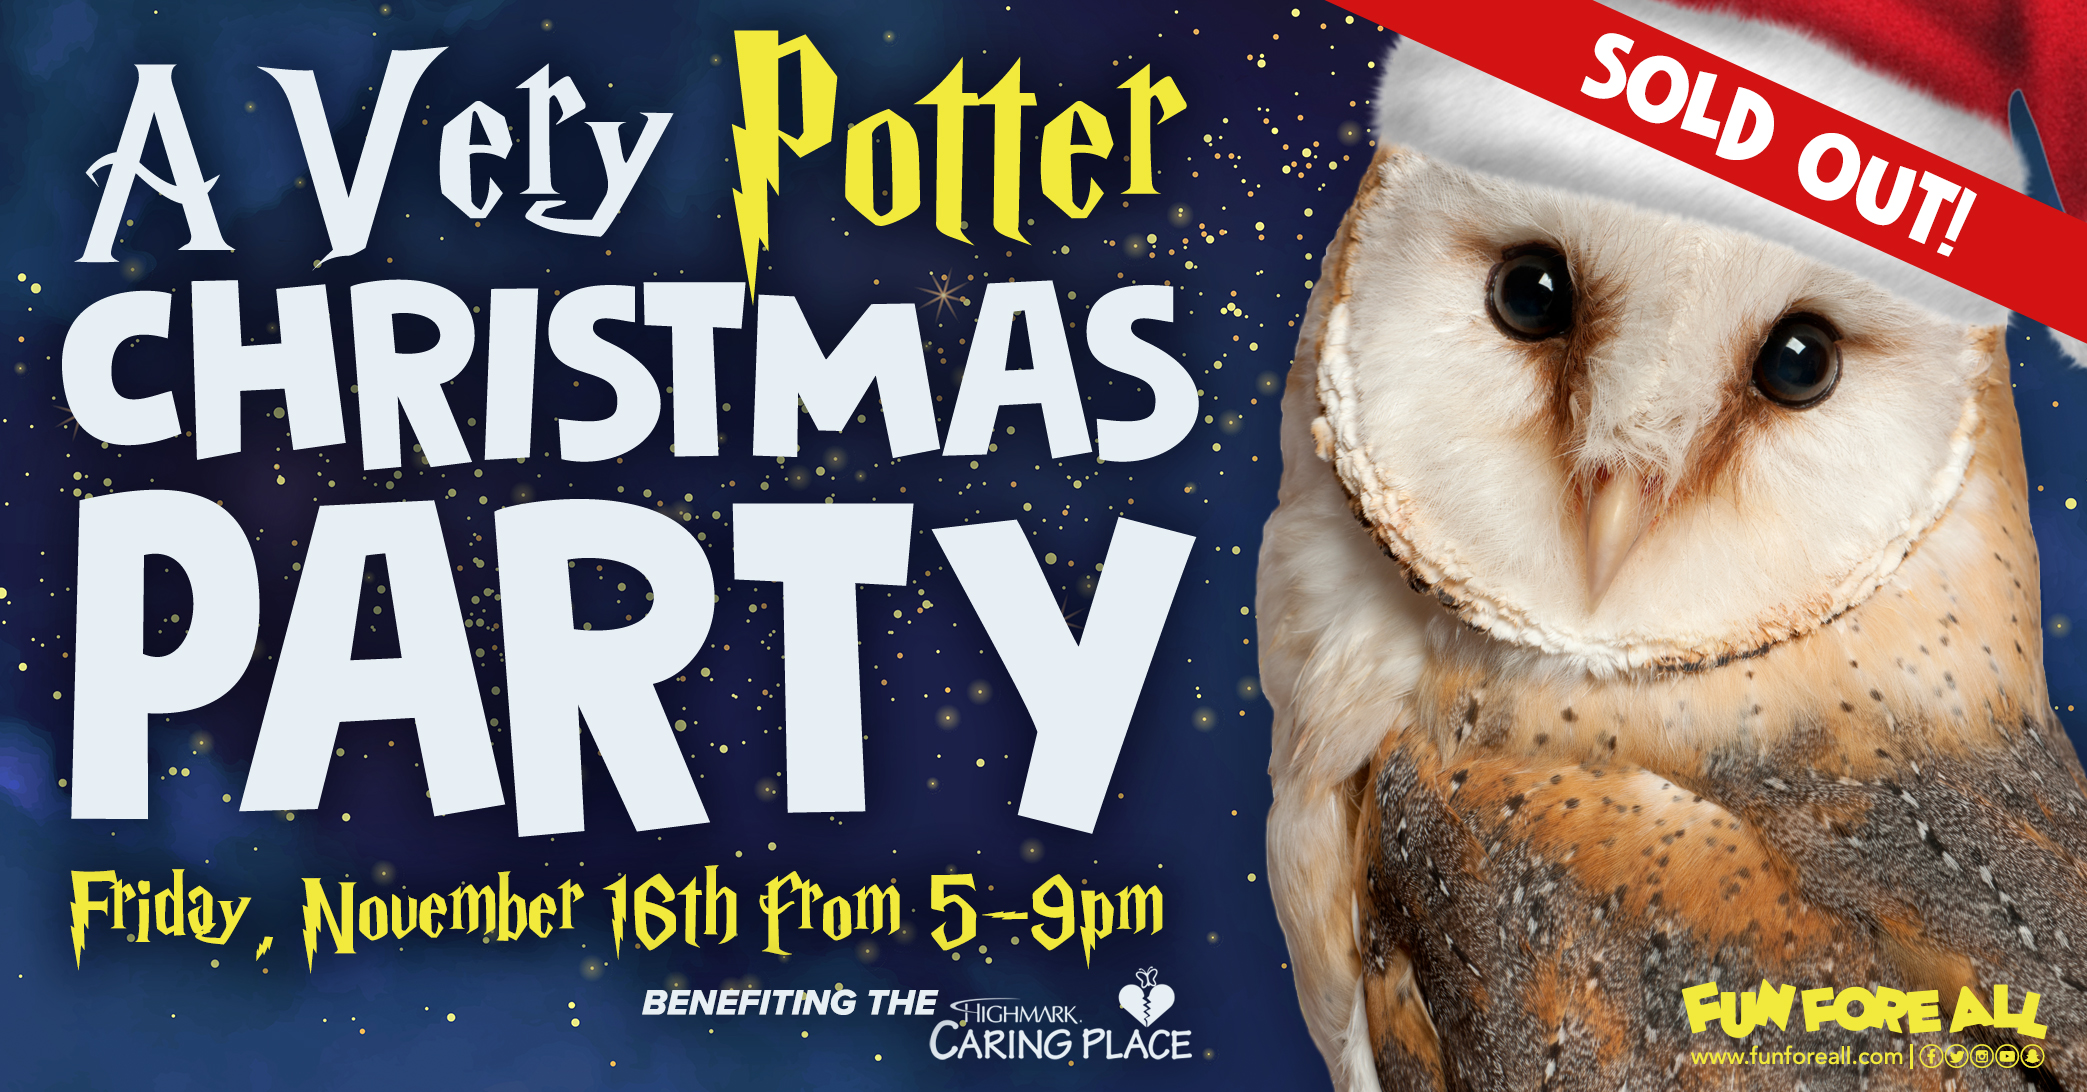 Facebook Invite (Holiday Lights - A Very Potter Christmas Party) SOLD OUT.jpg